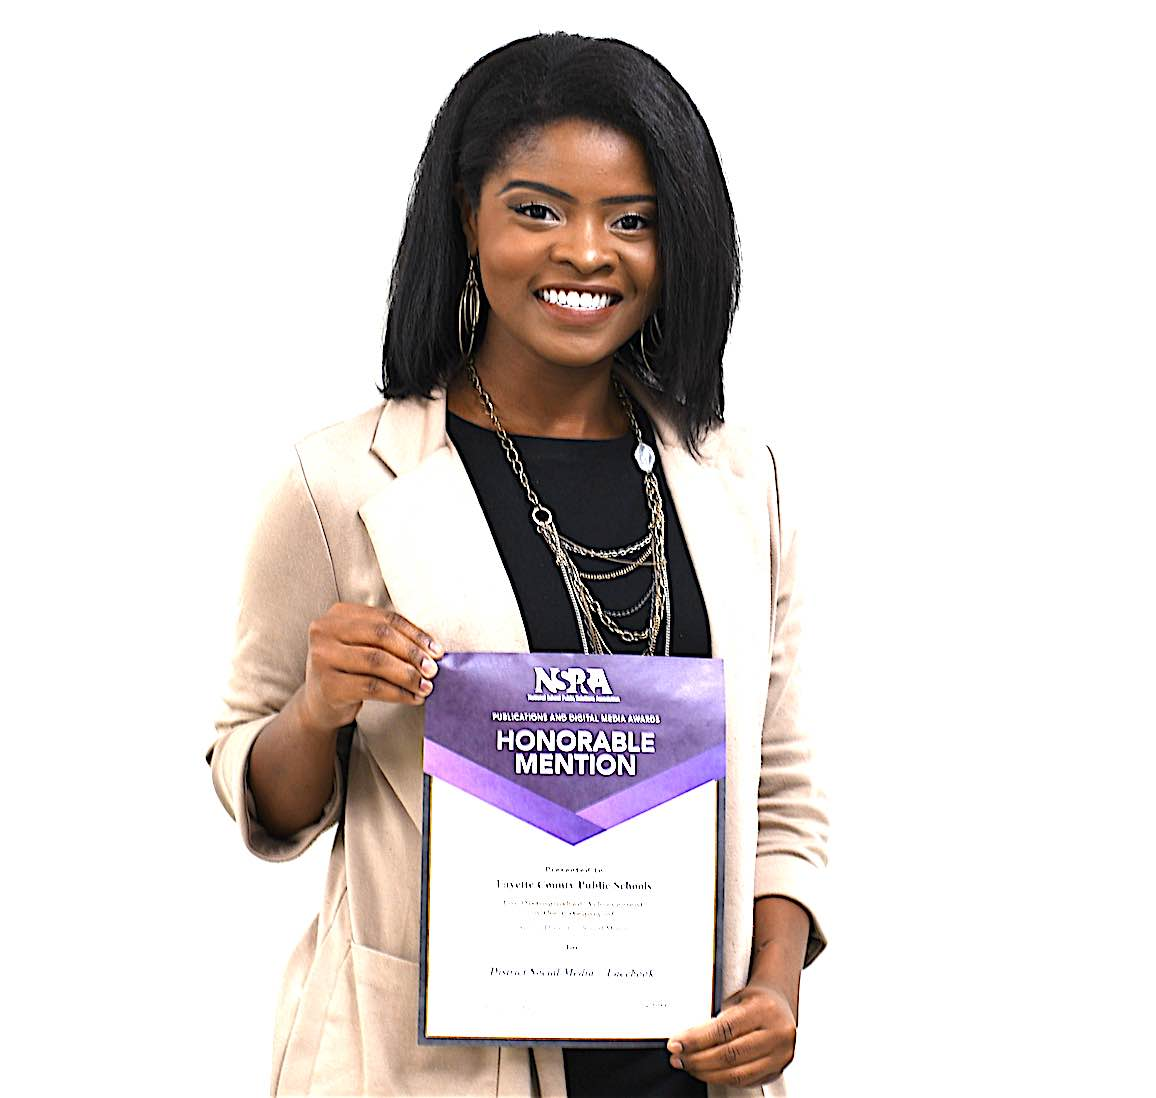 <b>Nia Washington, public information specialist, proudly displays her award for social media from the National School Public Relations Association. Photo/Fayette County School System.</b>